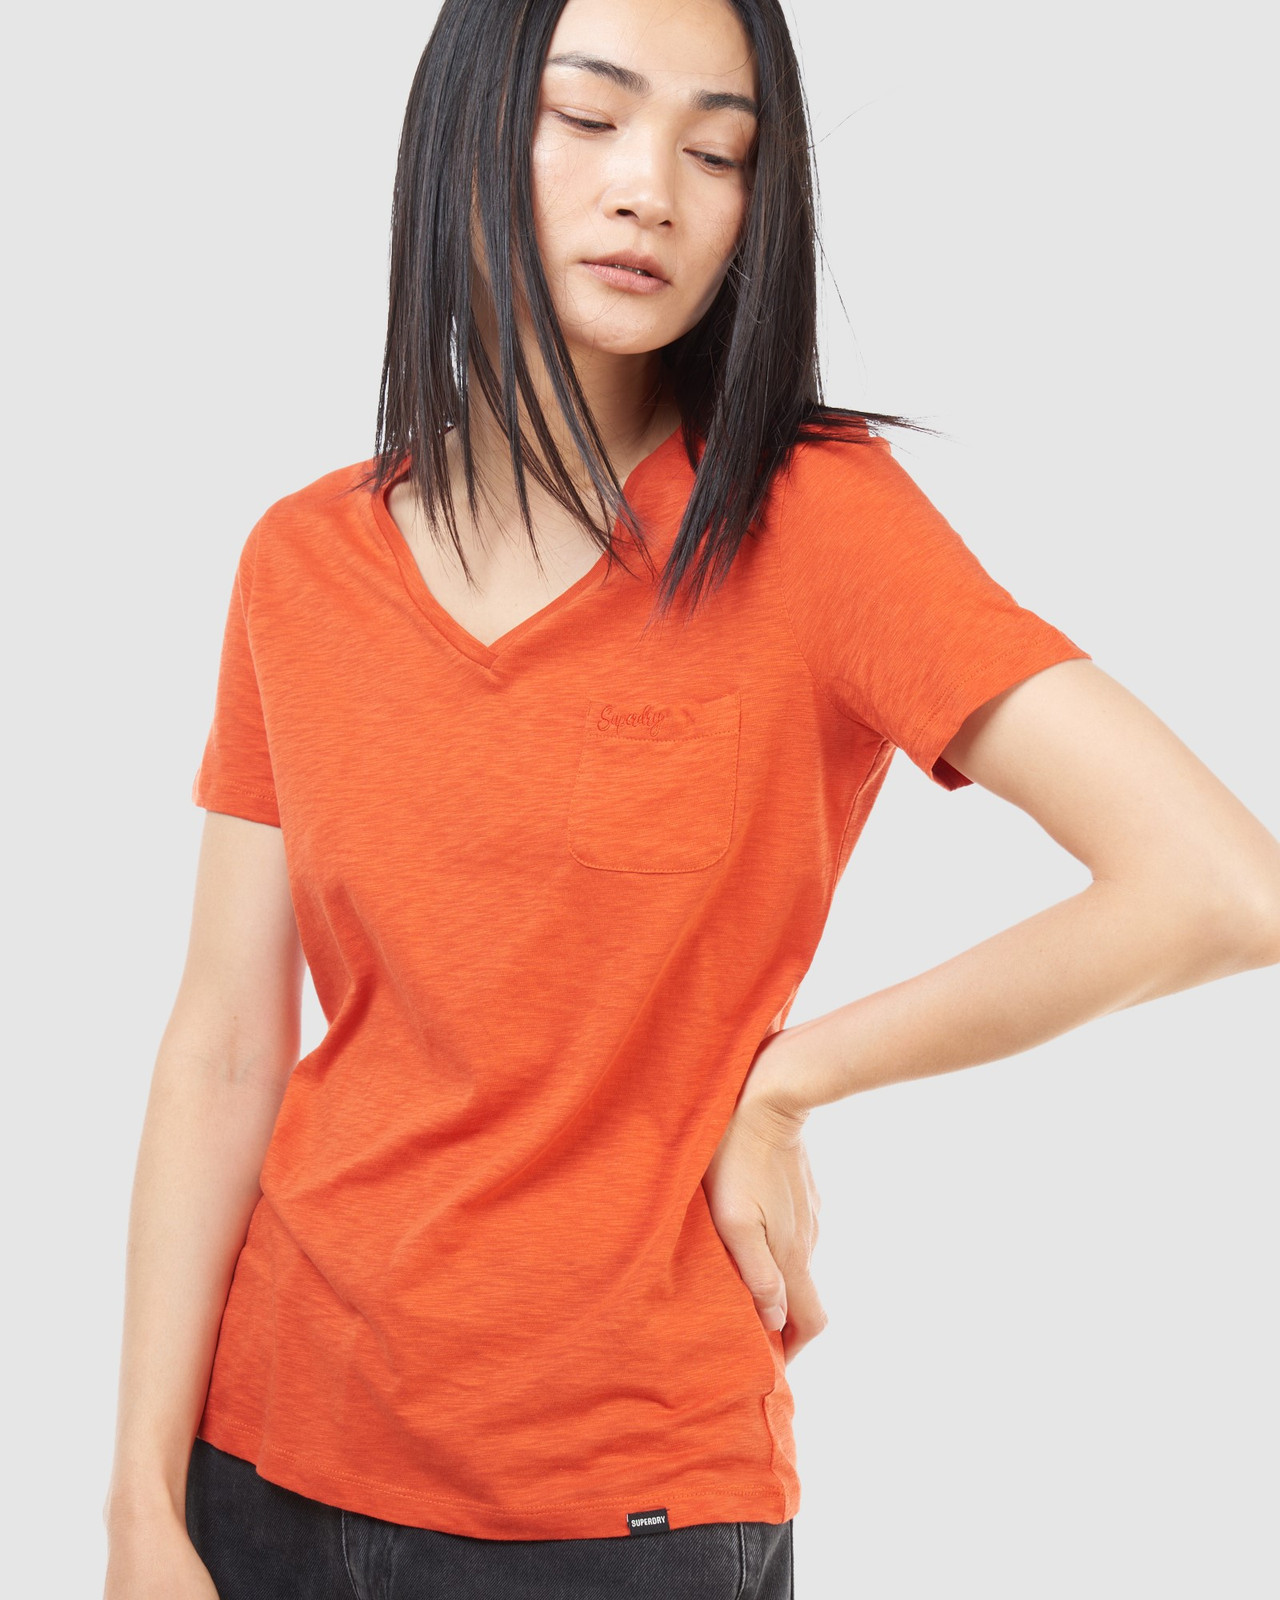 Superdry Womens SCRIPTED V NECK TEE Brown Plain T Shirts 7